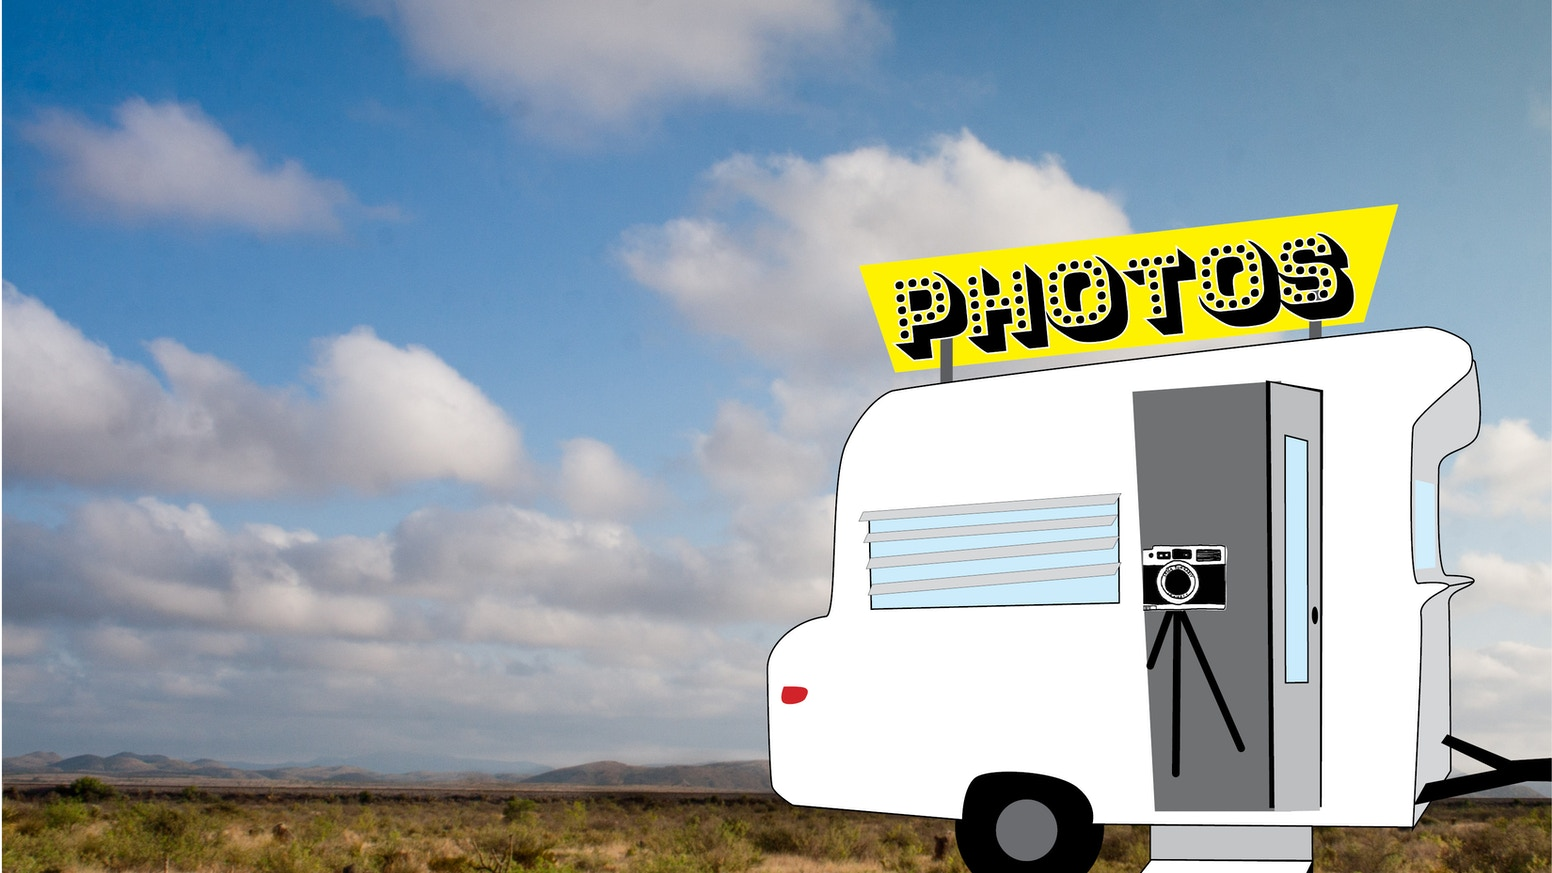 Mobile Photo Booth by Deirdre Hanlon-Jones — Kickstarter